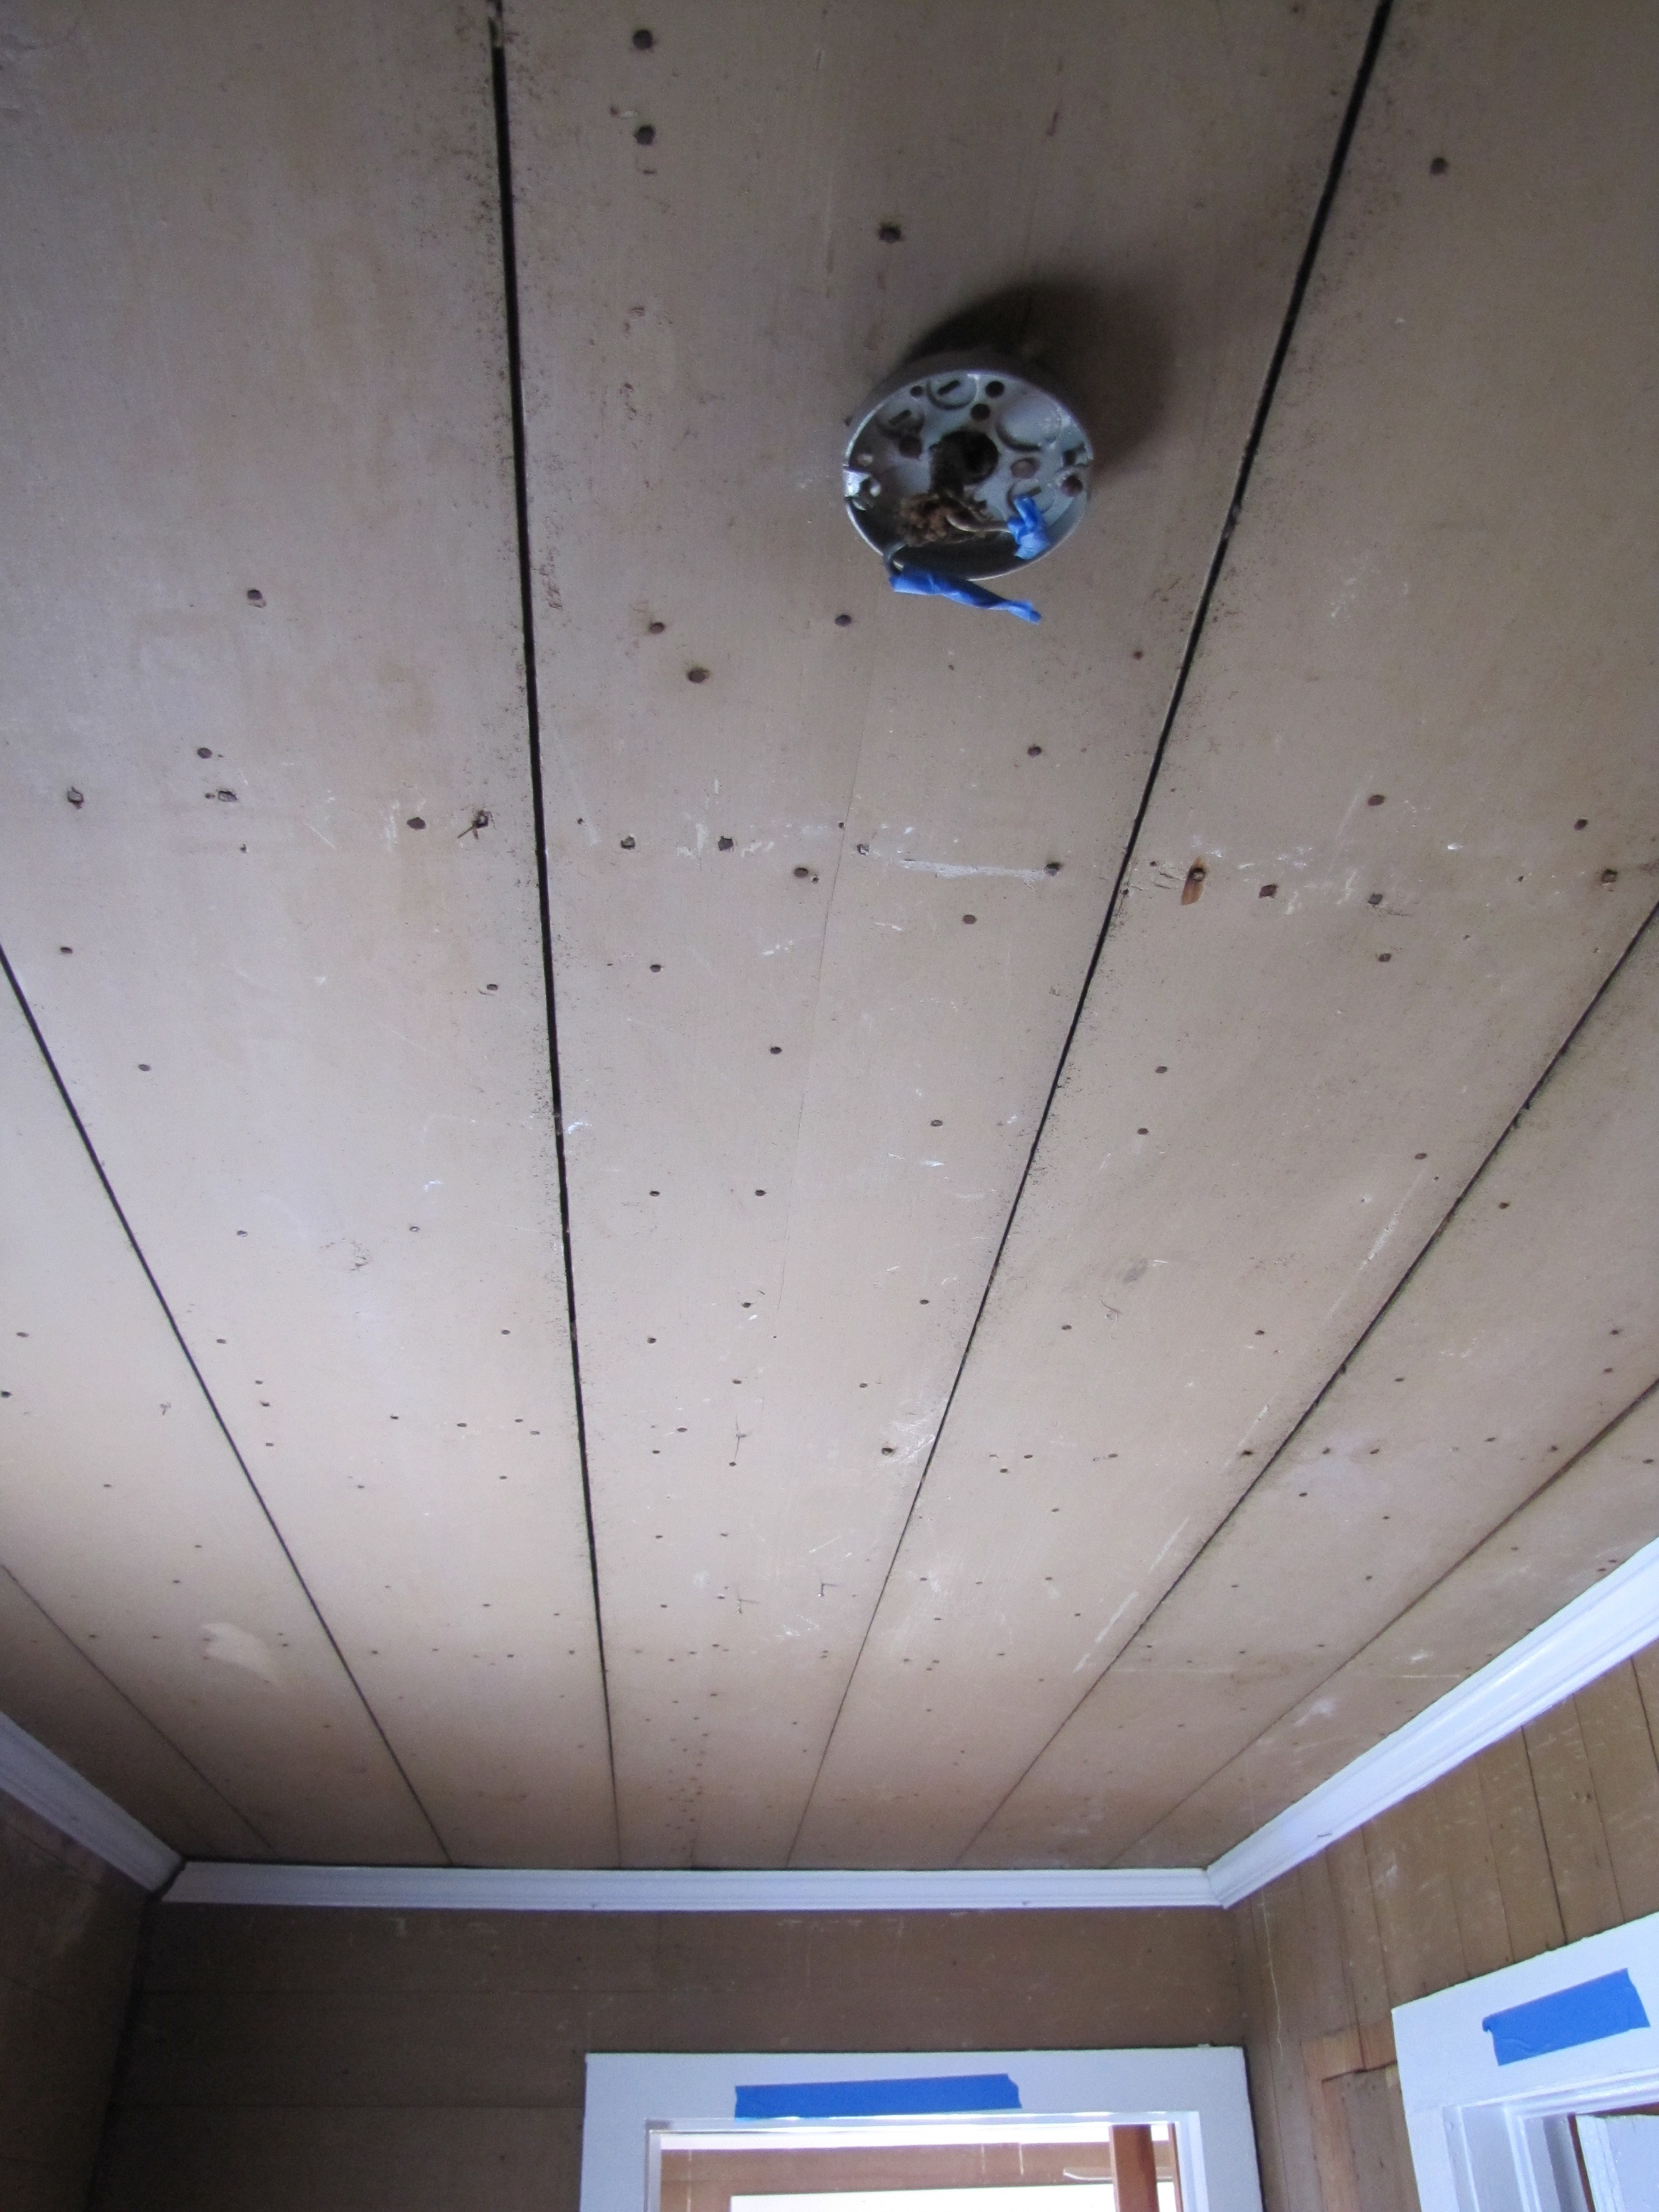 Ceiling and Light Fixture of Upstairs Hallway, Fac